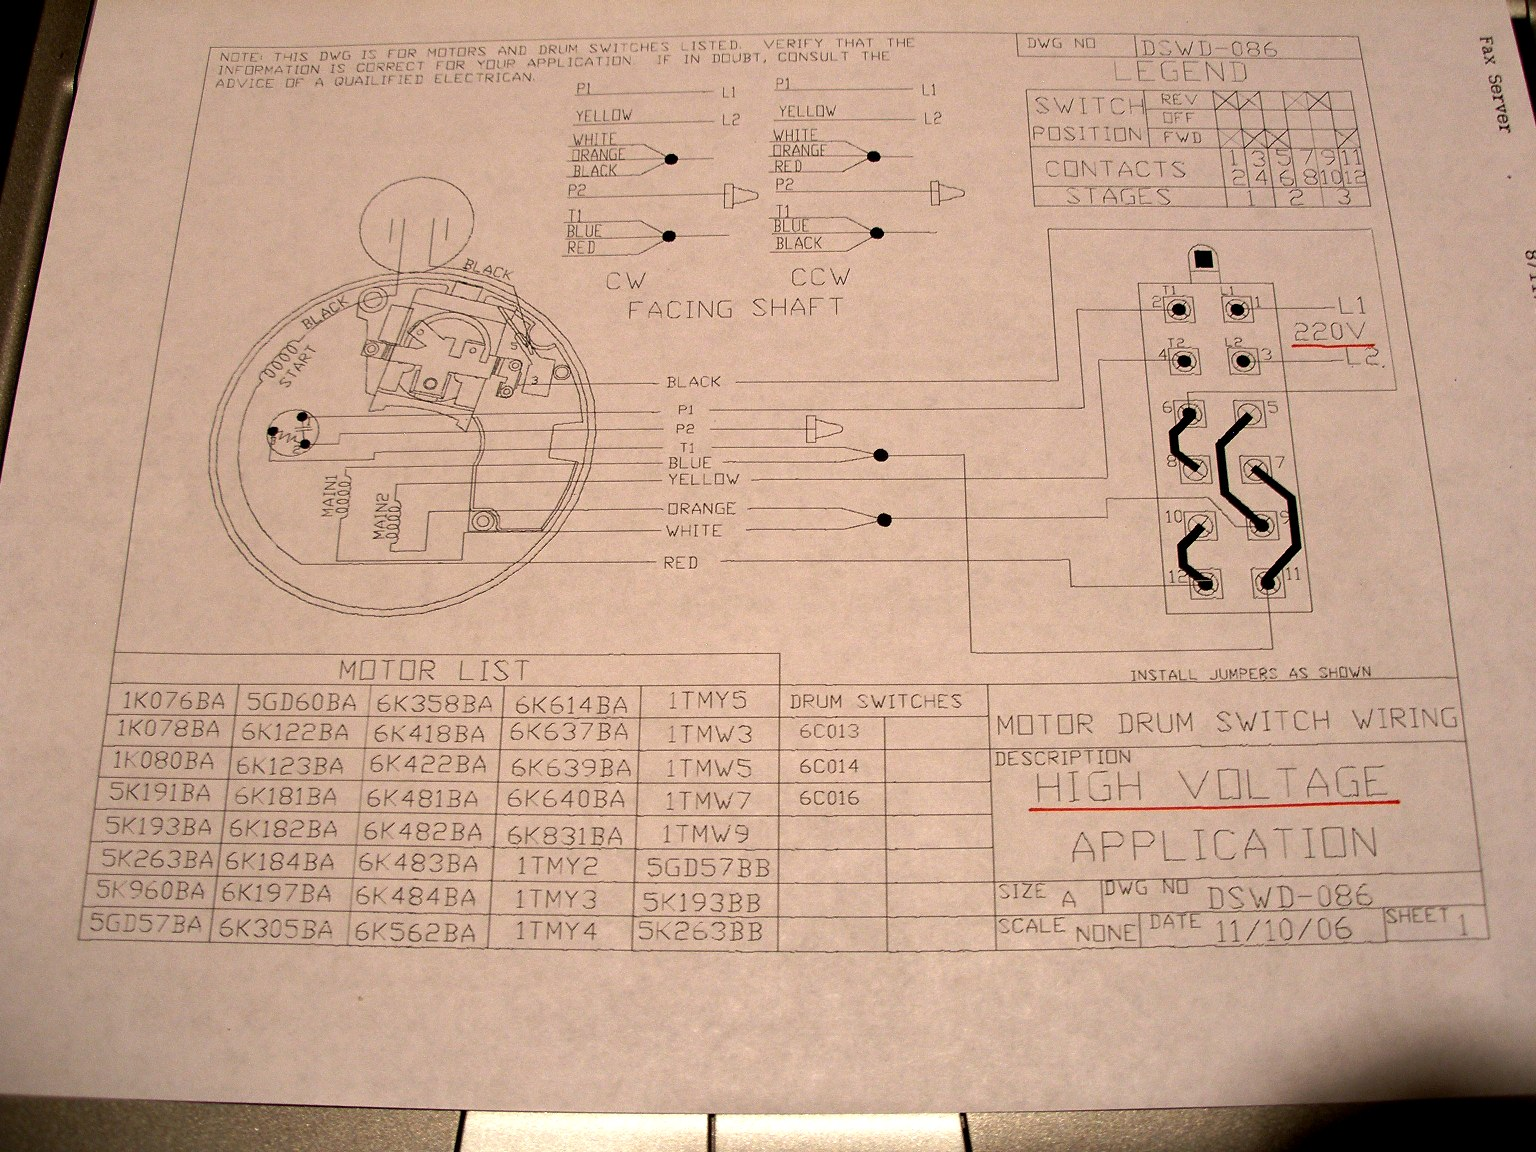 2011 08 11_193044_grainger_dayton_high_voltage_diagram boat hoist wiring diagram boat free wiring diagrams readingrat net Grainger Motor Wiring Diagrams at crackthecode.co